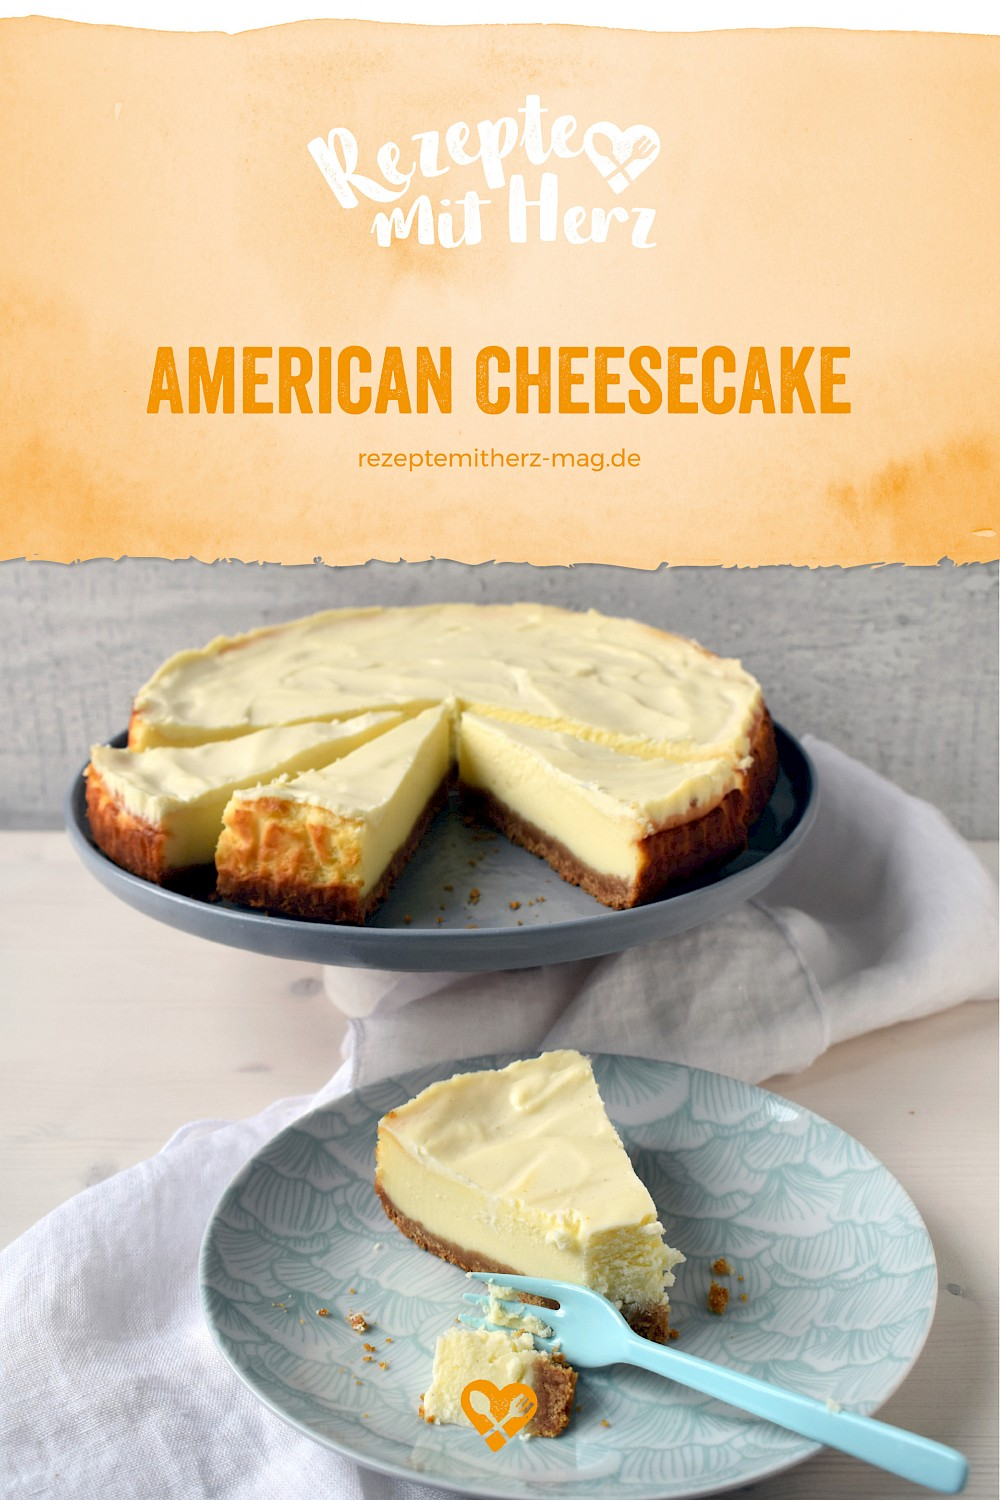 American Cheesecake - Thermomix-Rezept